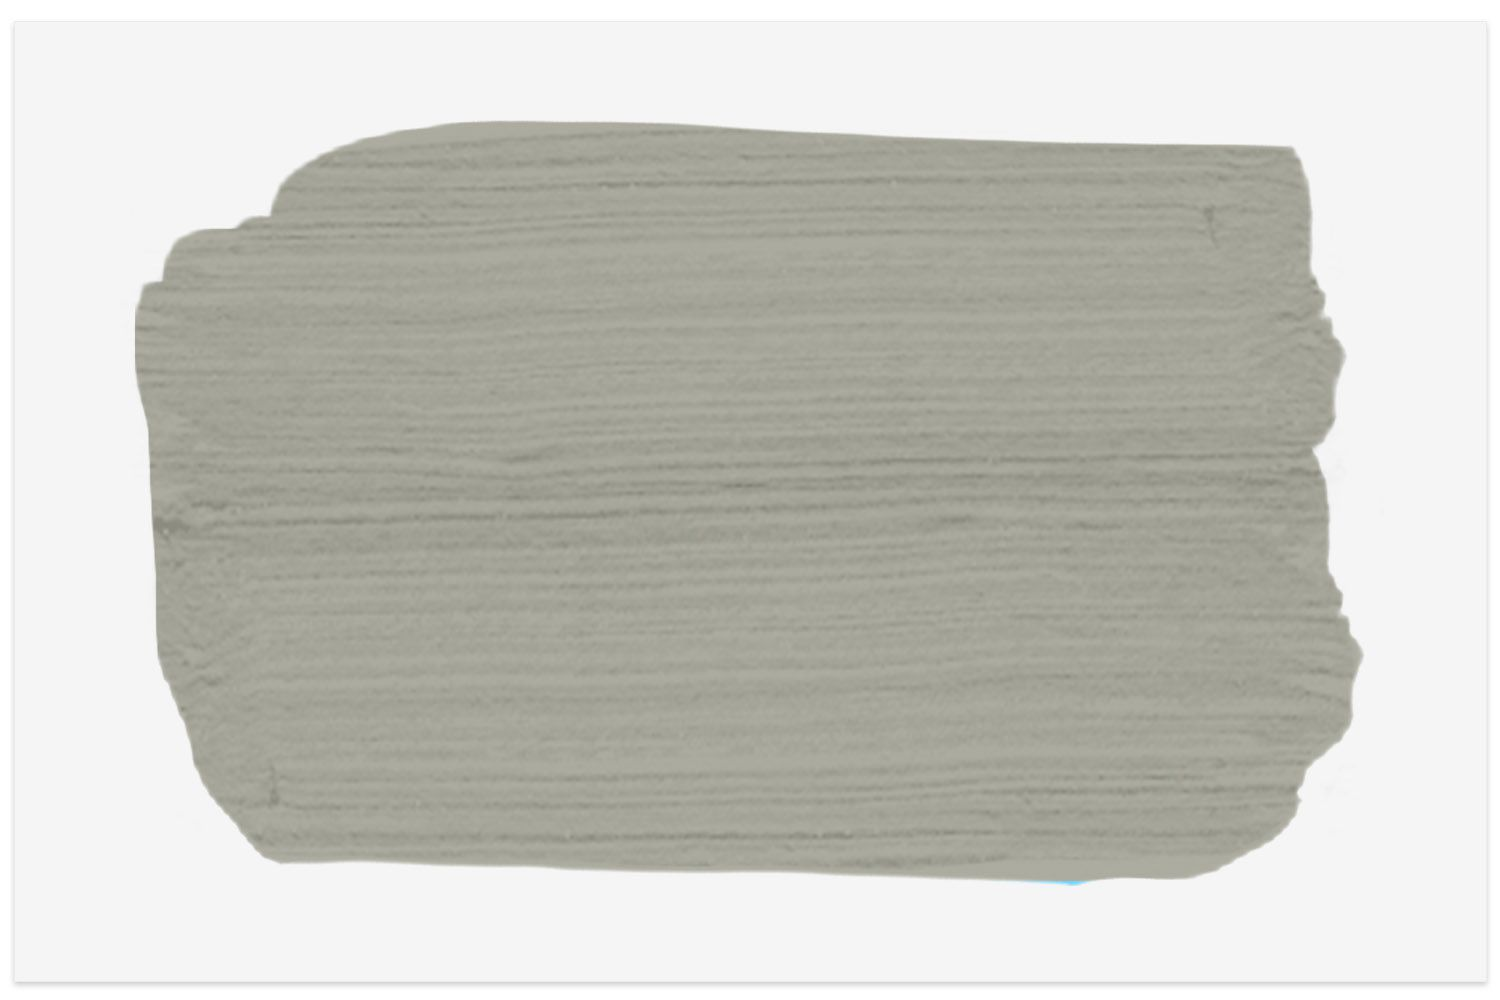 Escape Gray paint swatch from Sherwin-Williams